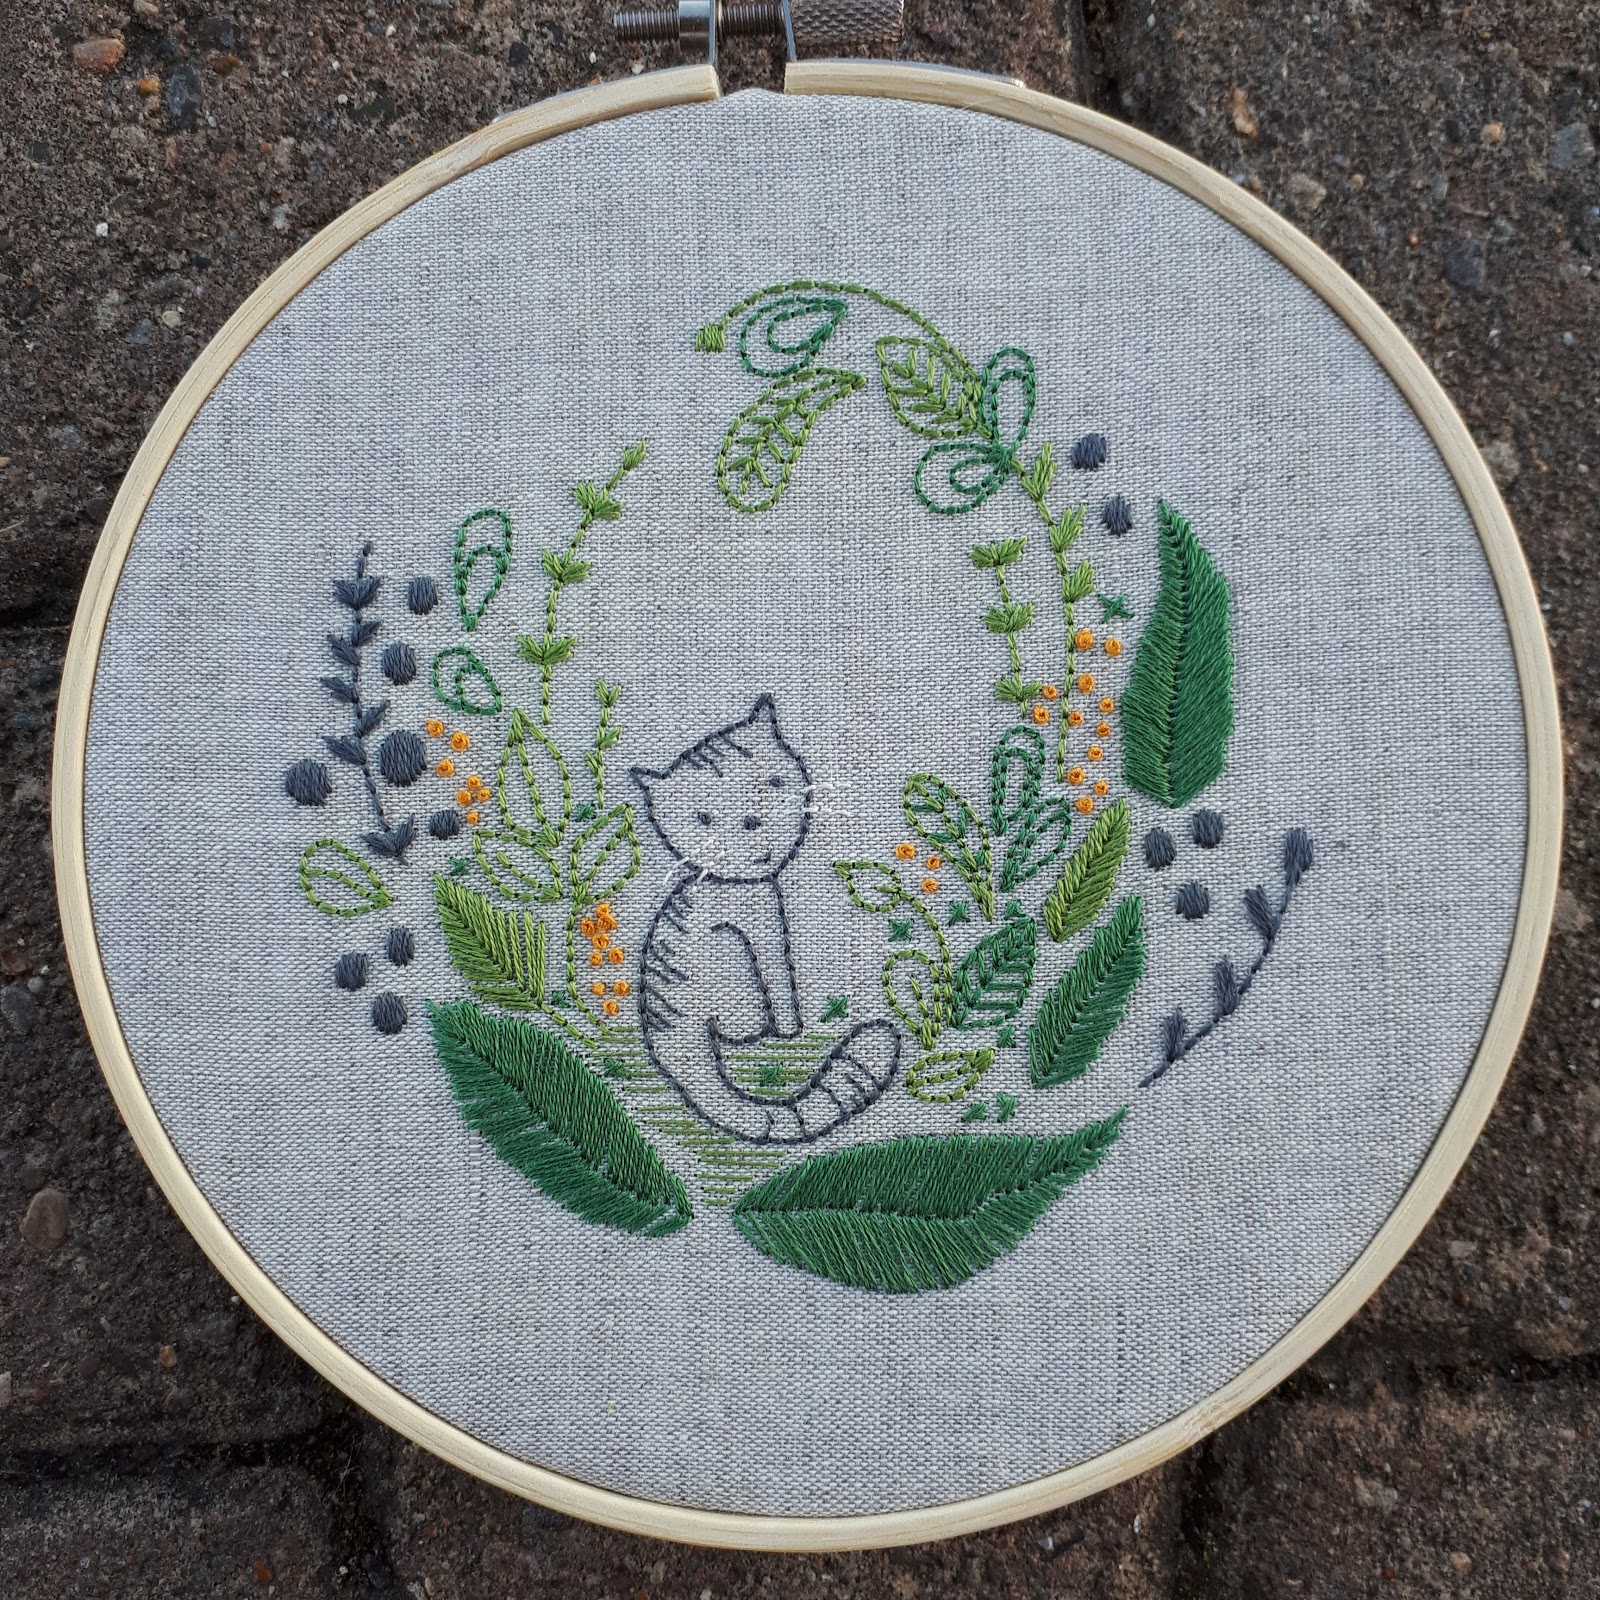 Cat Embroidery Patterns Jennies Threads Cat Embroidery A Finish